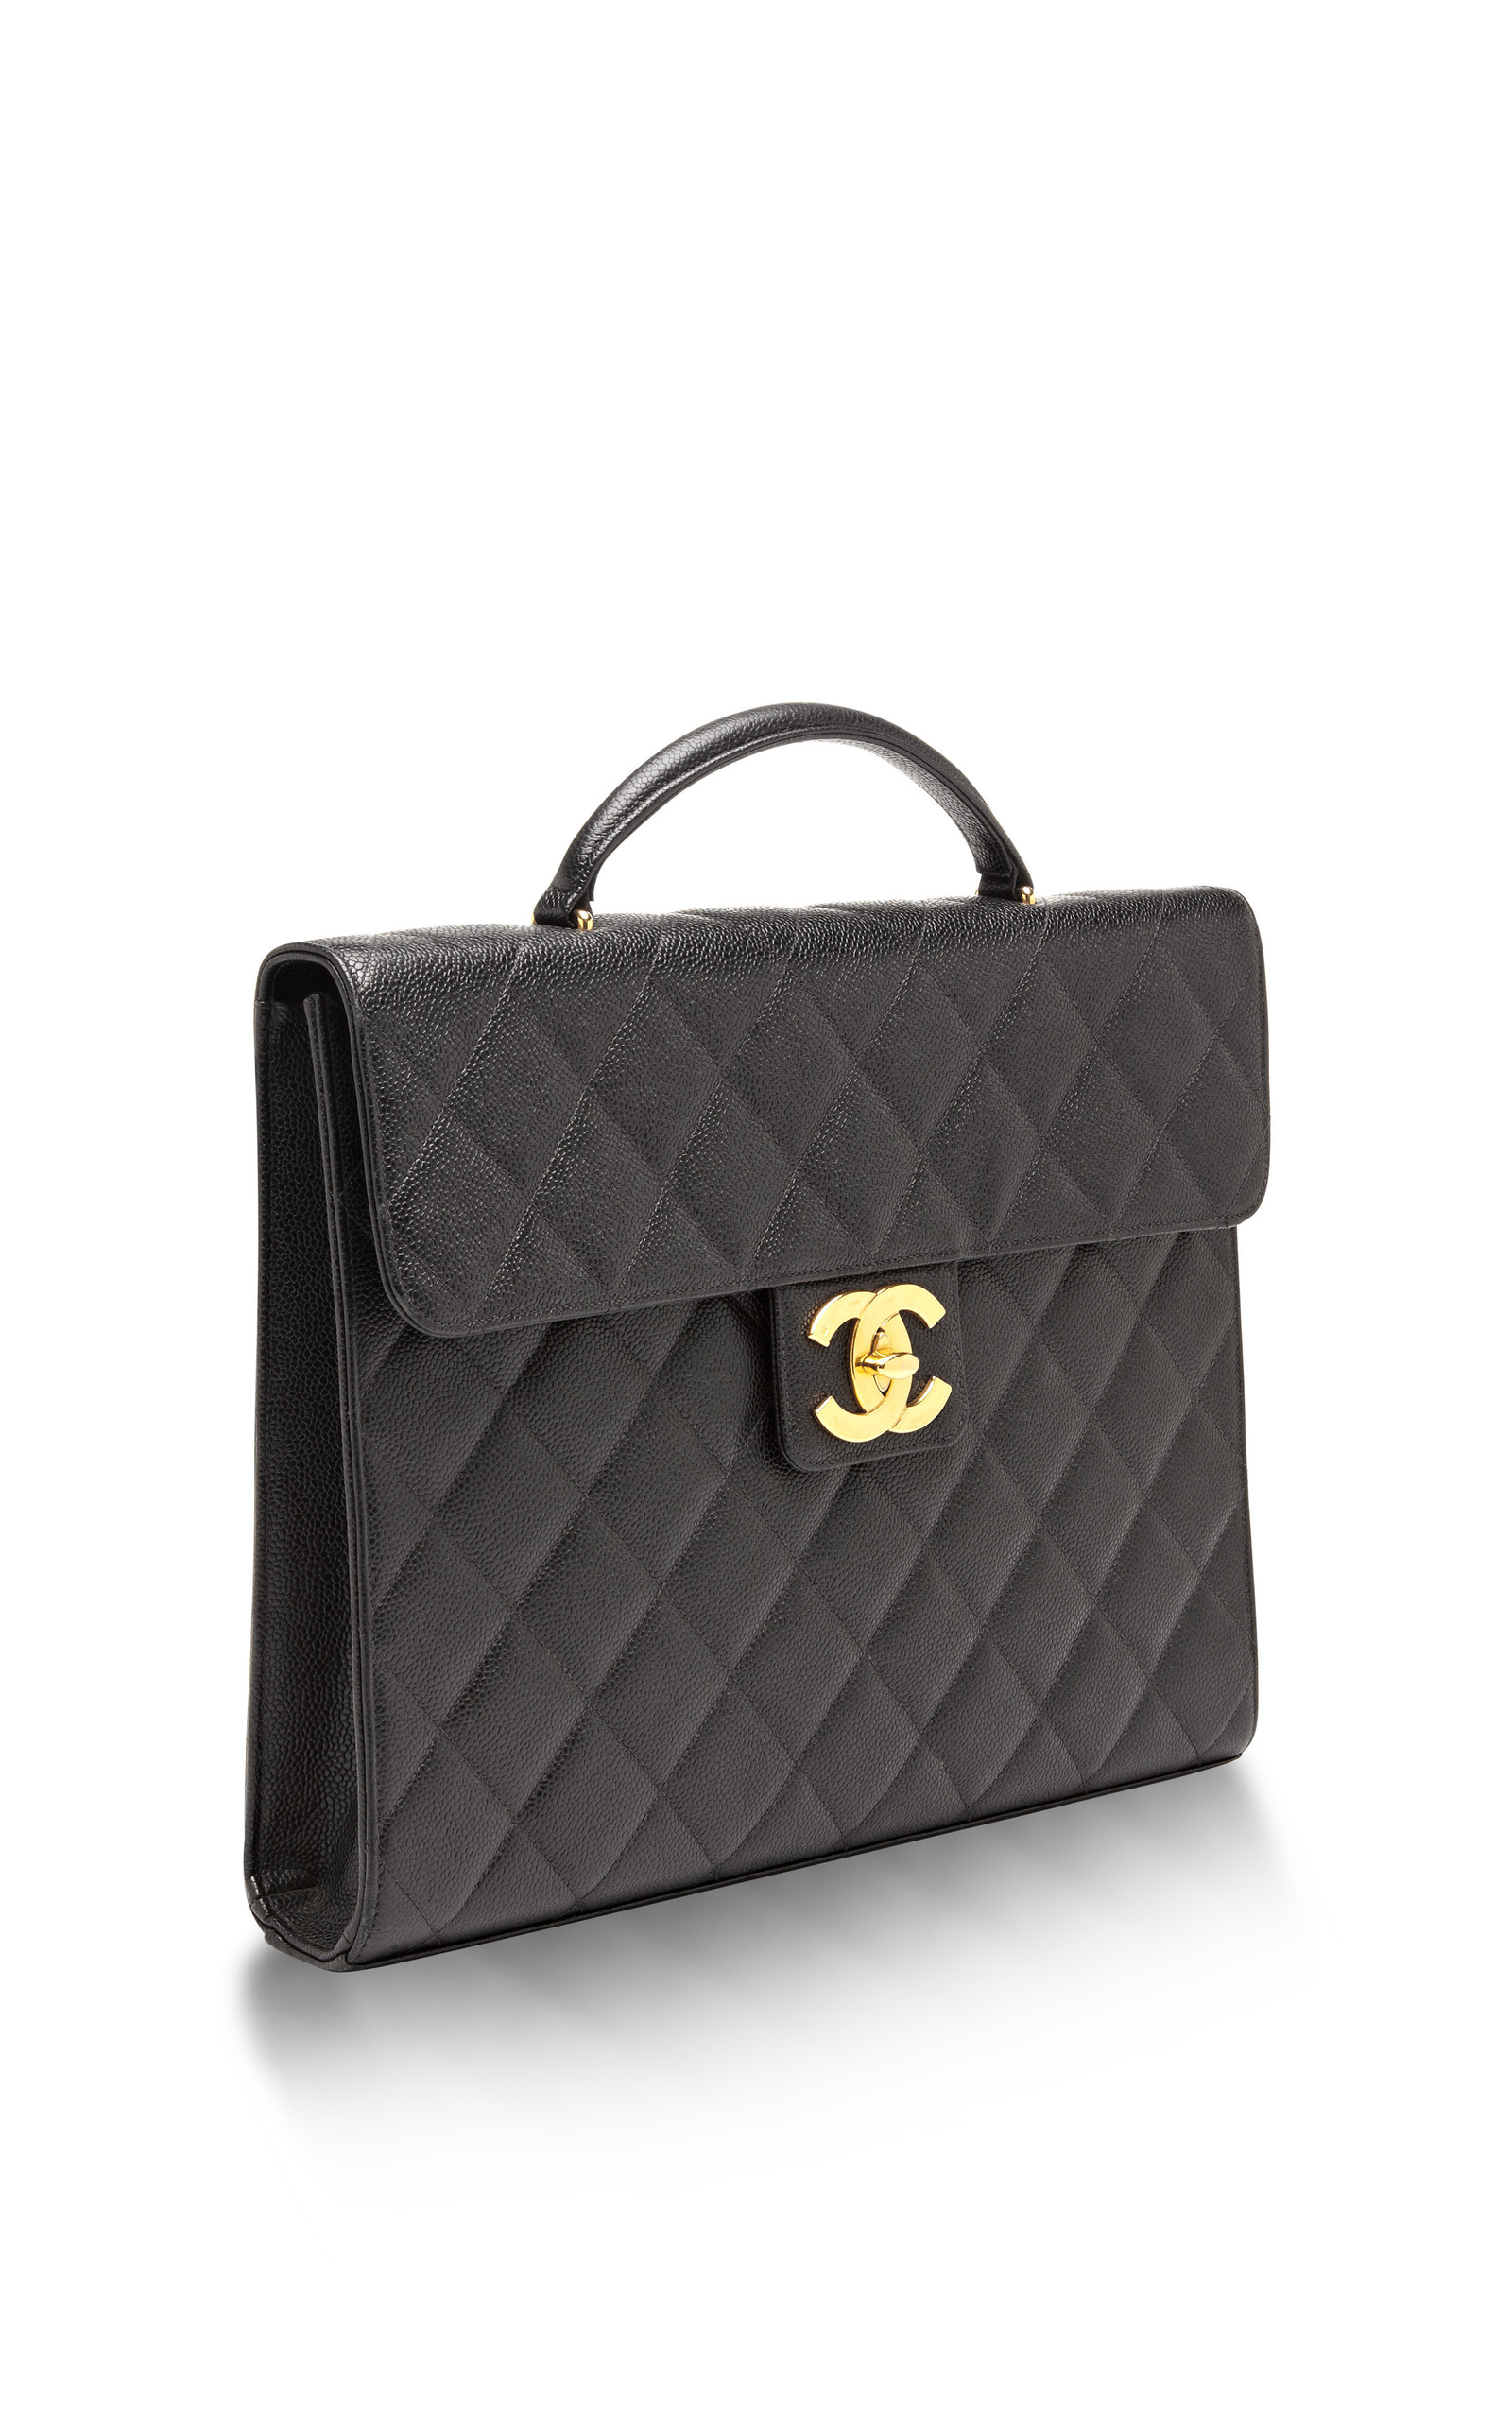 90a608c59f84 What Goes Around Comes AroundVintage Chanel Black Caviar Briefcase. CLOSE.  Loading